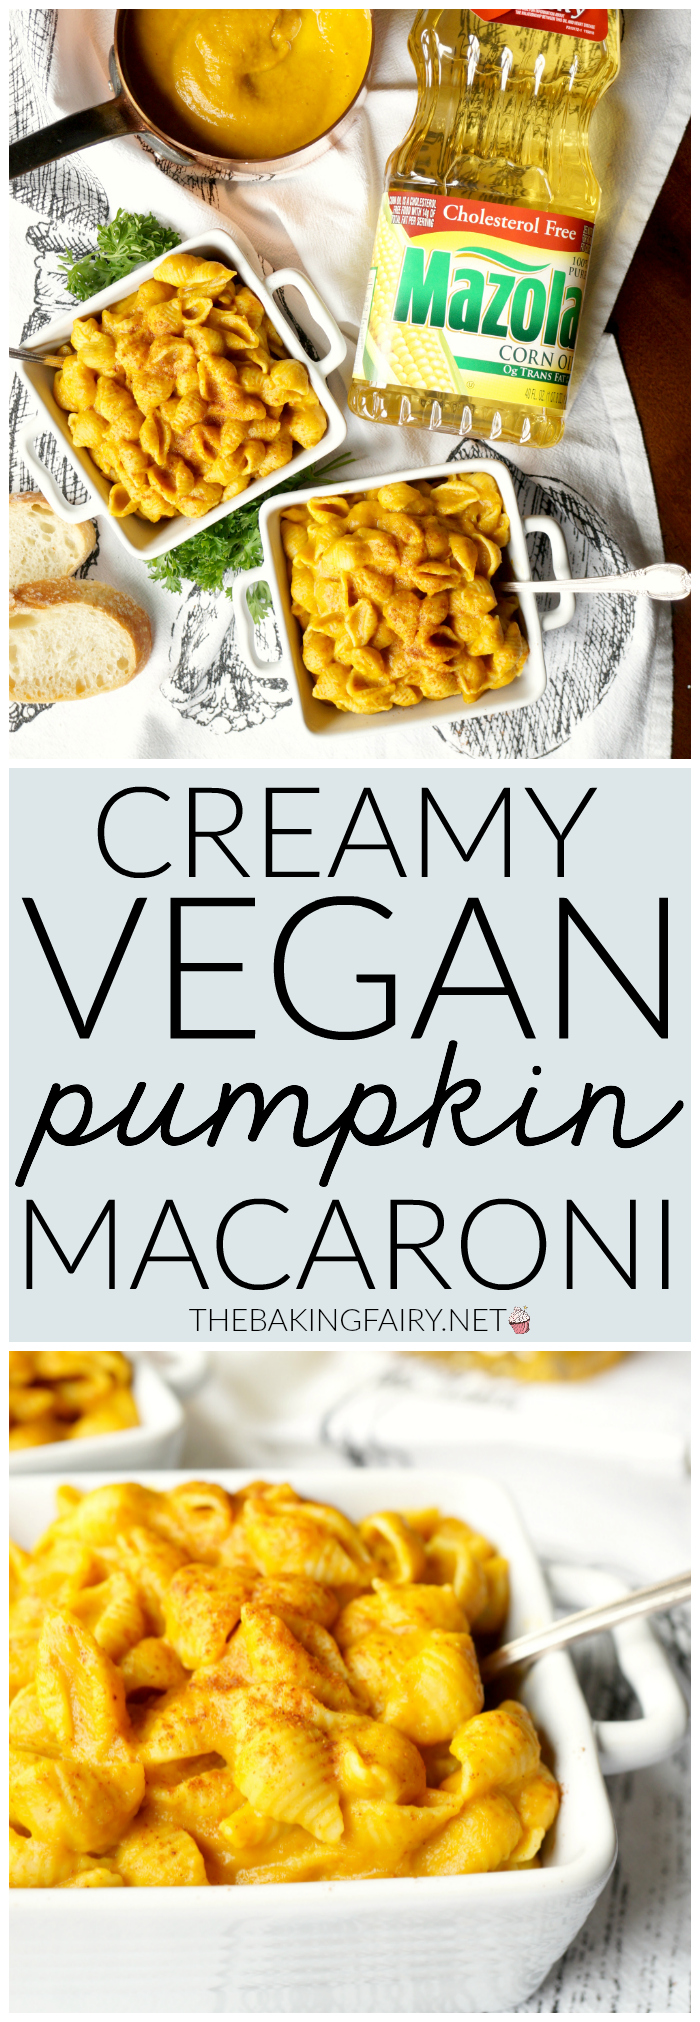 creamy vegan pumpkin macaroni | The Baking Fairy #SimpleSwap #ad